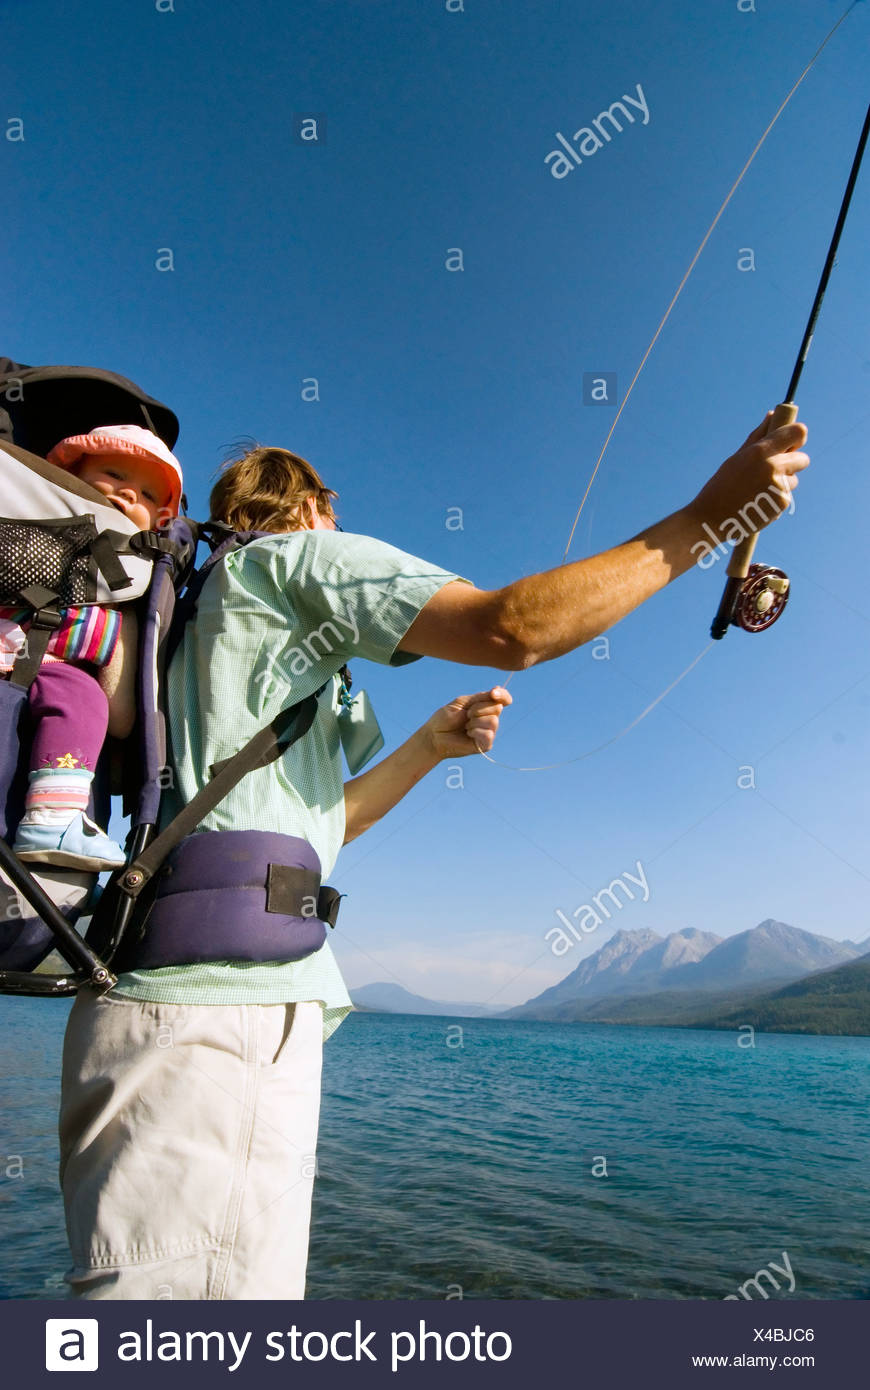 Fisherman father with daughter in child-carrier backpack, fly-fishing for trout, Tatlayoko Lake, British Columbia, Canada. - Stock Image